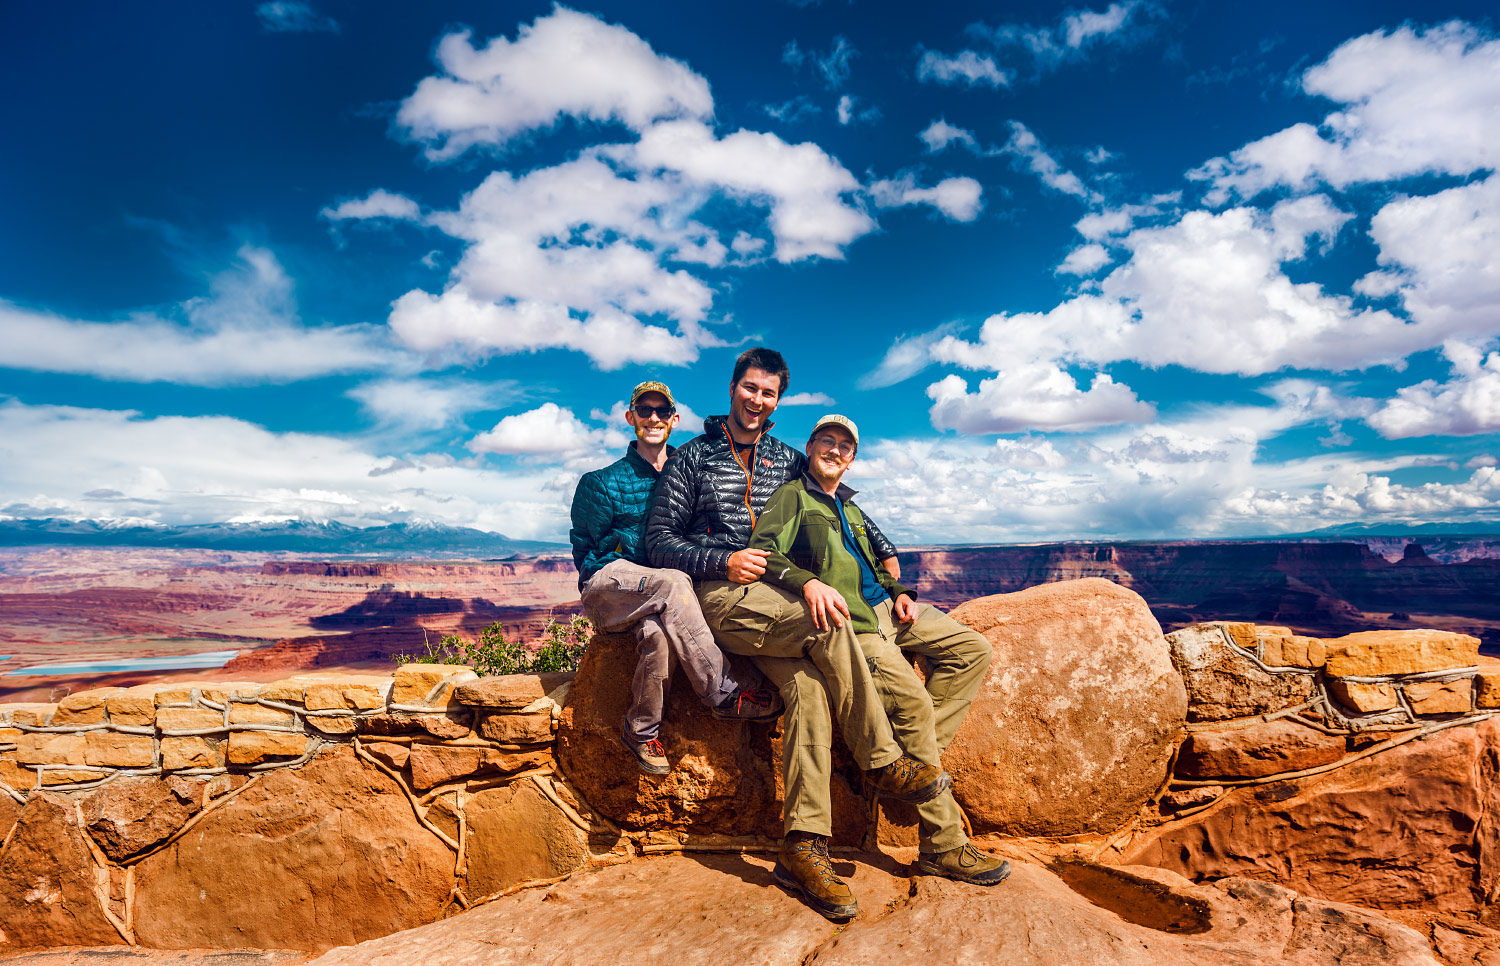 Justin Kernes, Carter Smith, and Caleb Jennings pose for a group photo at Dead Horse Point State Park, Utah.